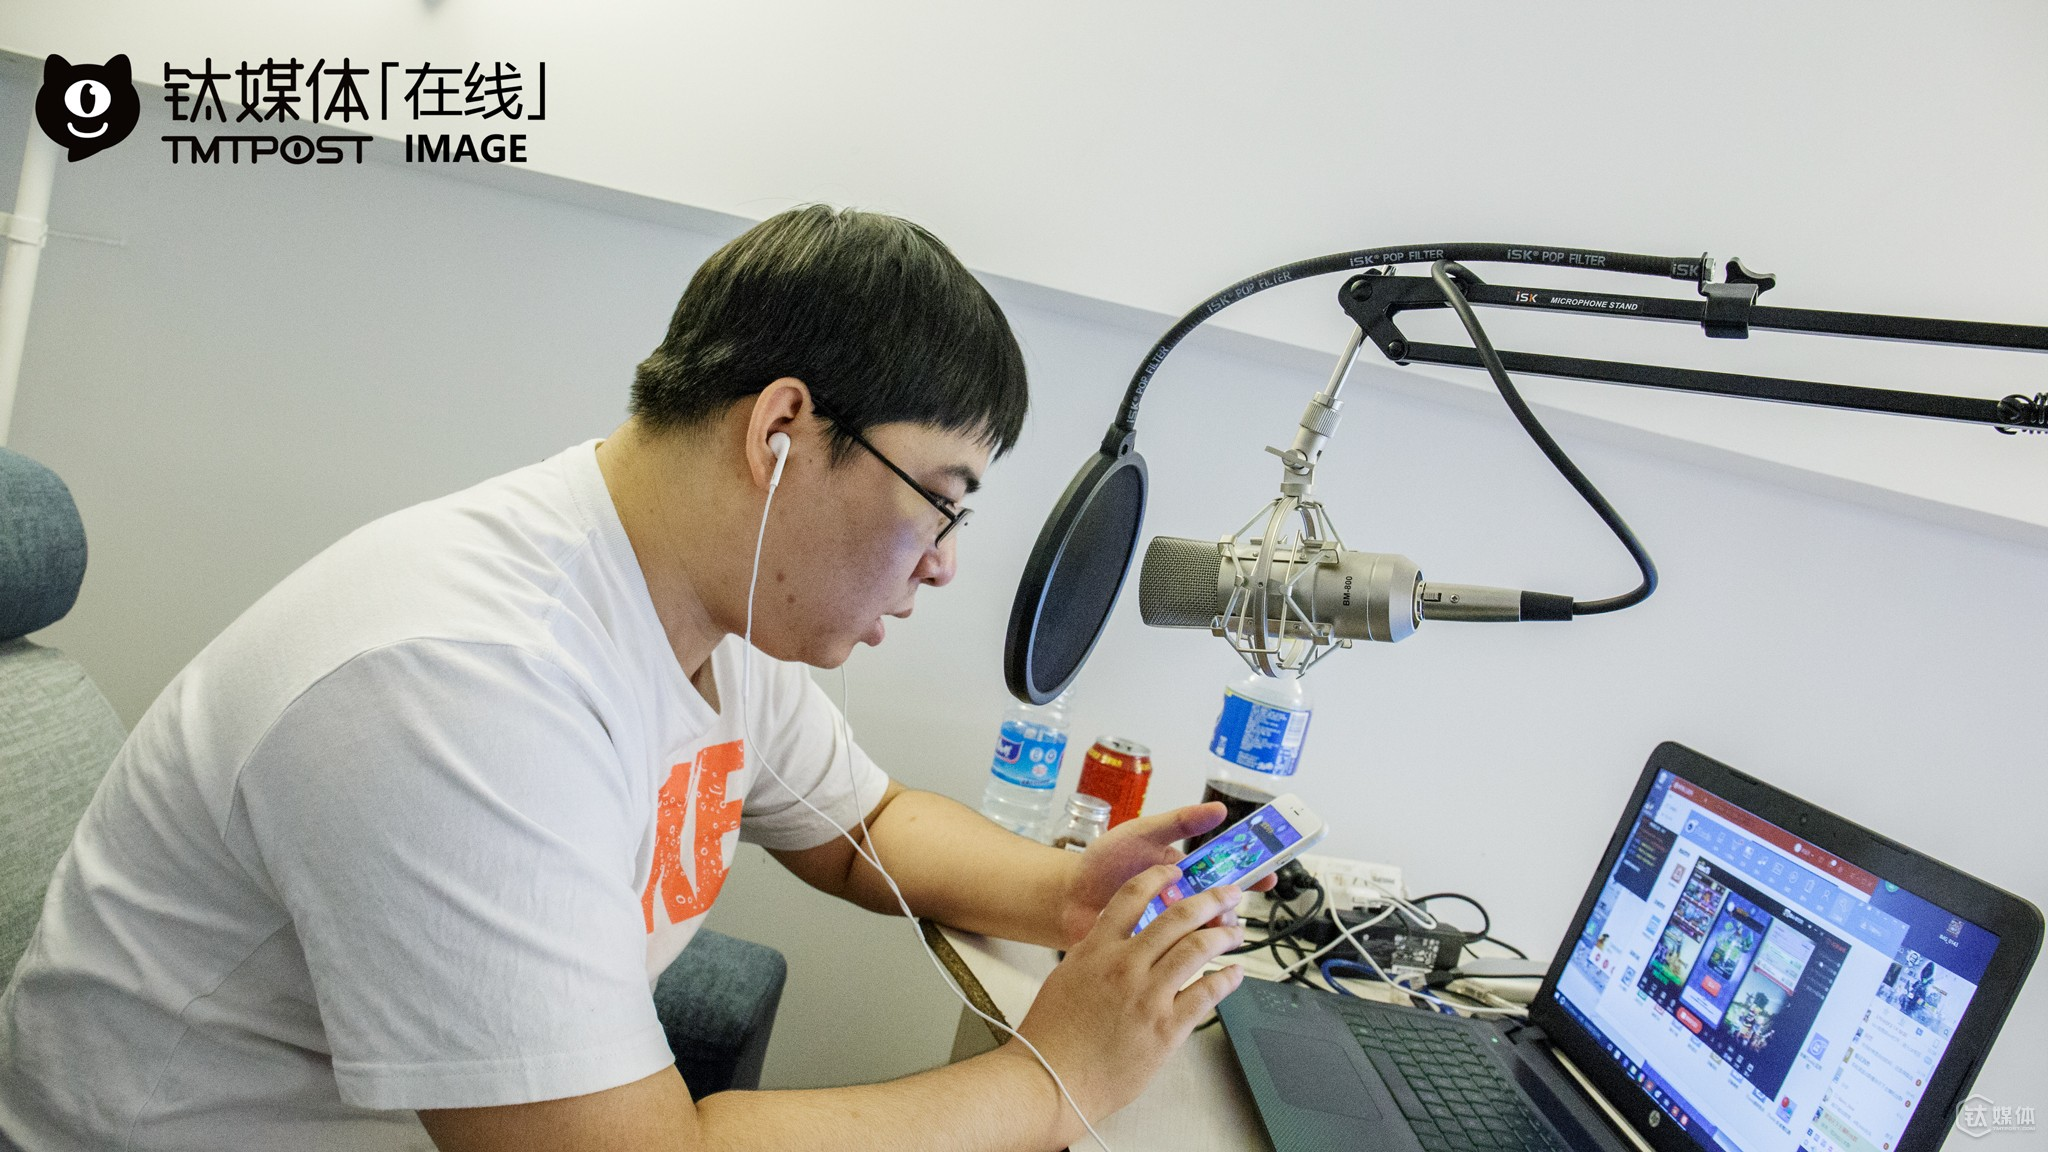 "Junwushuang (his nickname in the game) was live broadcasting games in the above picture. ""I slipped class and played electronic games when I was still in middle school. At that time, I would often stay the night at internet cafe and grab some sleep the next morning. I was so addicted to games that I totally neglected my studies"" he told TMTpost. After graduating from senior high school, he started learning how to repair high-end watch from his grandpa, because his family want him to carry on the career. So they are quite supportive of his hobby. ""Although the profit margin for repairing watches is very huge, especially for high-end watches, it is quite boring in the long term. To fix a watch, I might have to be very patient and work with an accuracy of deci-millimeter. After learning the skill for two or three years also, I found that I still loved playing electronic sports, since it's more exciting and fun. So I decided to move to Beijing,"" he explained."